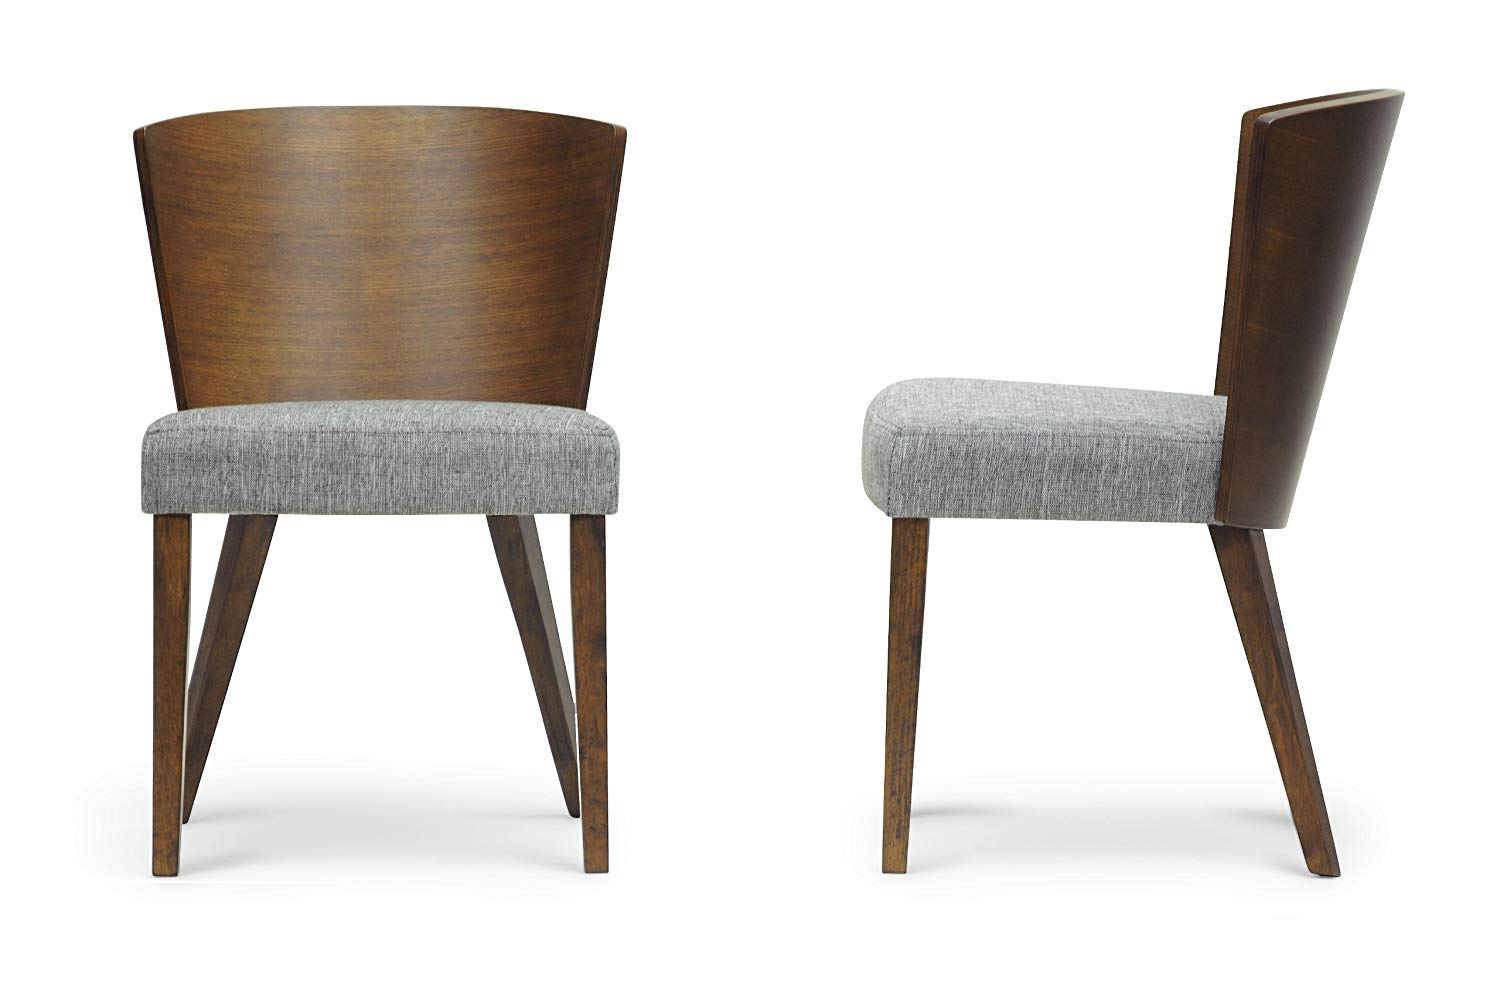 contemporary dining chairs amazon.com - baxton studio sparrow wood modern dining chair, brown, set EEYIQKV